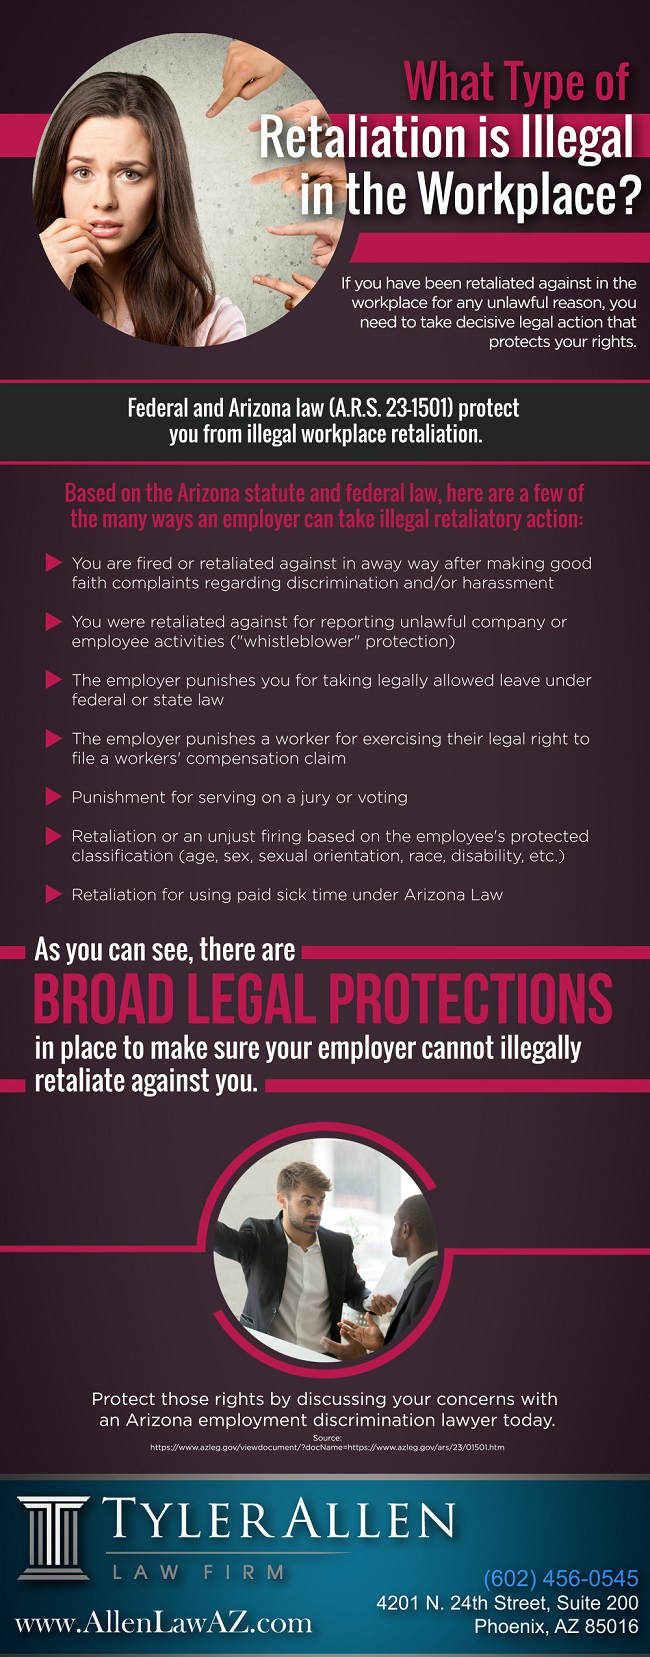 What Type of Retaliation is Illegal in the Workplace